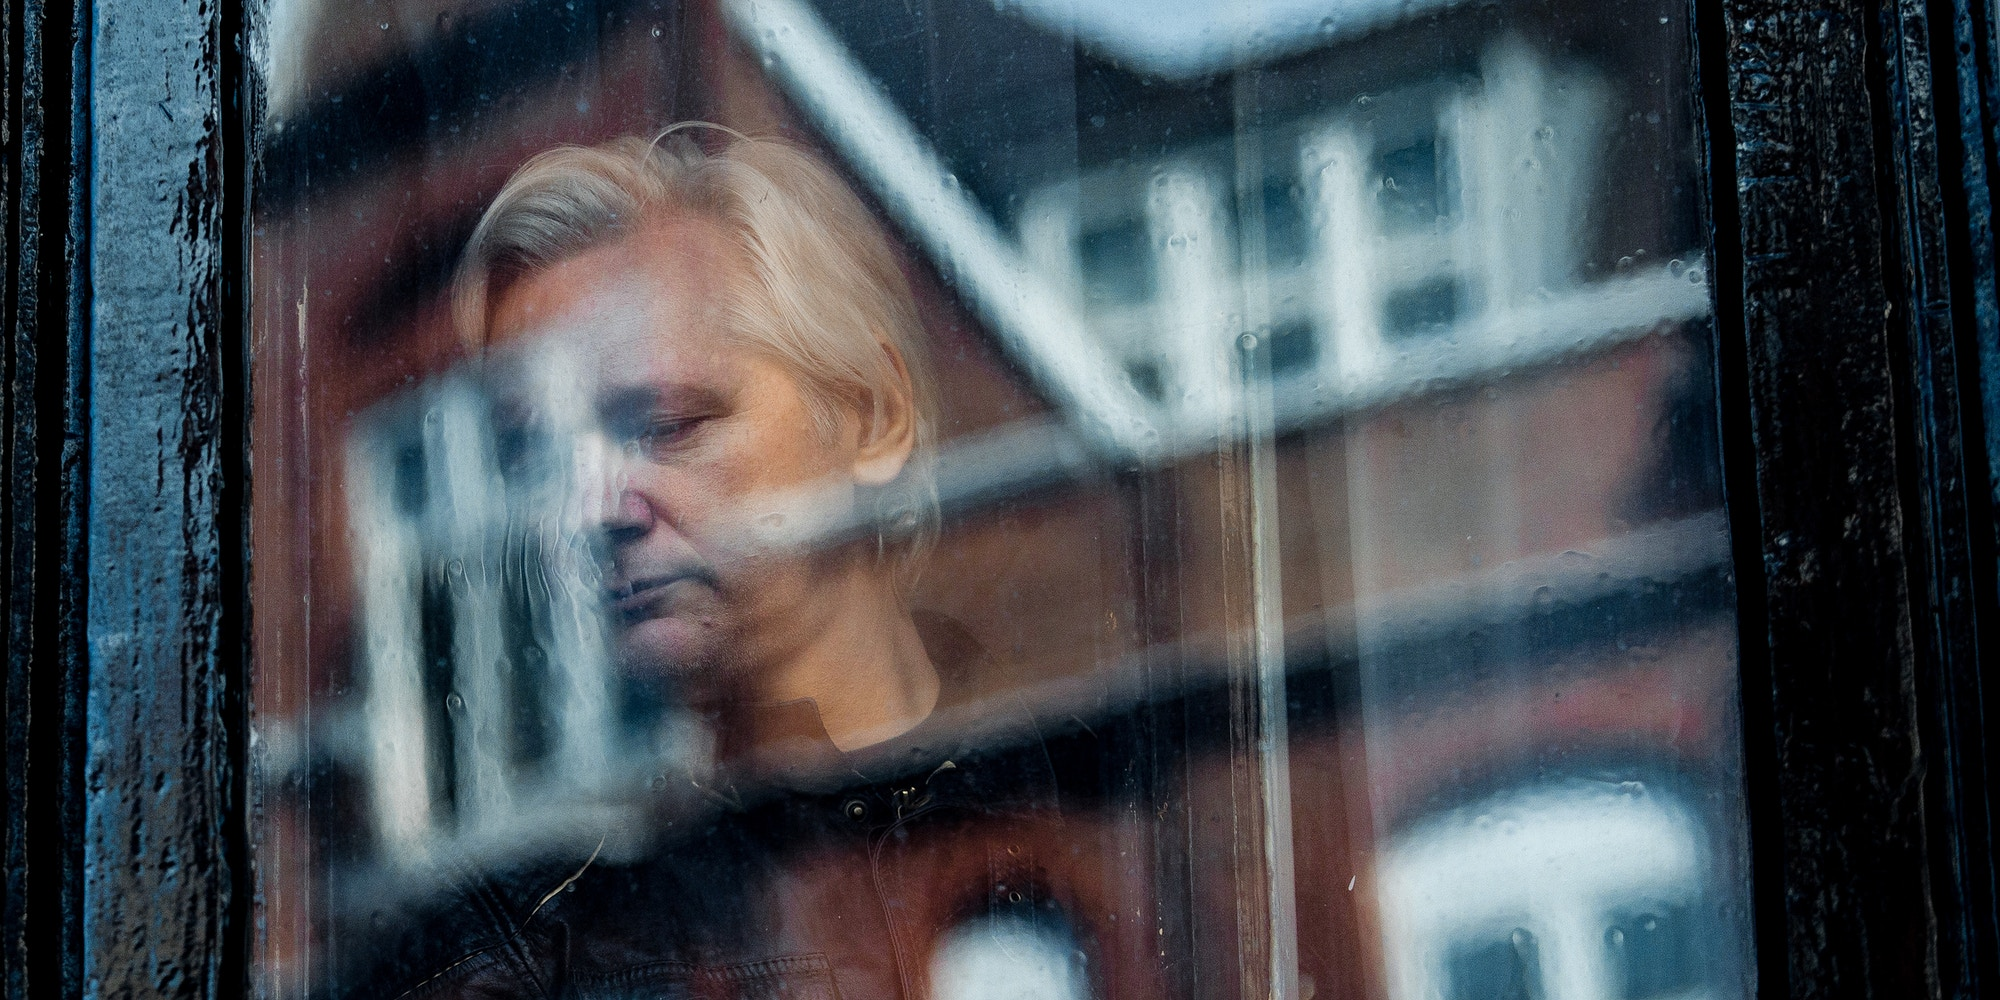 LONDON, ENGLAND - MAY 19: Julian Assange steps out to speak to the media from the balcony of the Embassy Of Ecuador on May 19, 2017 in London, England.  Julian Assange, founder of the Wikileaks website that published US Government secrets, has been wanted in Sweden on charges of rape since 2012.  He sought asylum in the Ecuadorian Embassy in London and today police have said he will still face arrest if he leaves. (Photo by Jack Taylor/Getty Images)